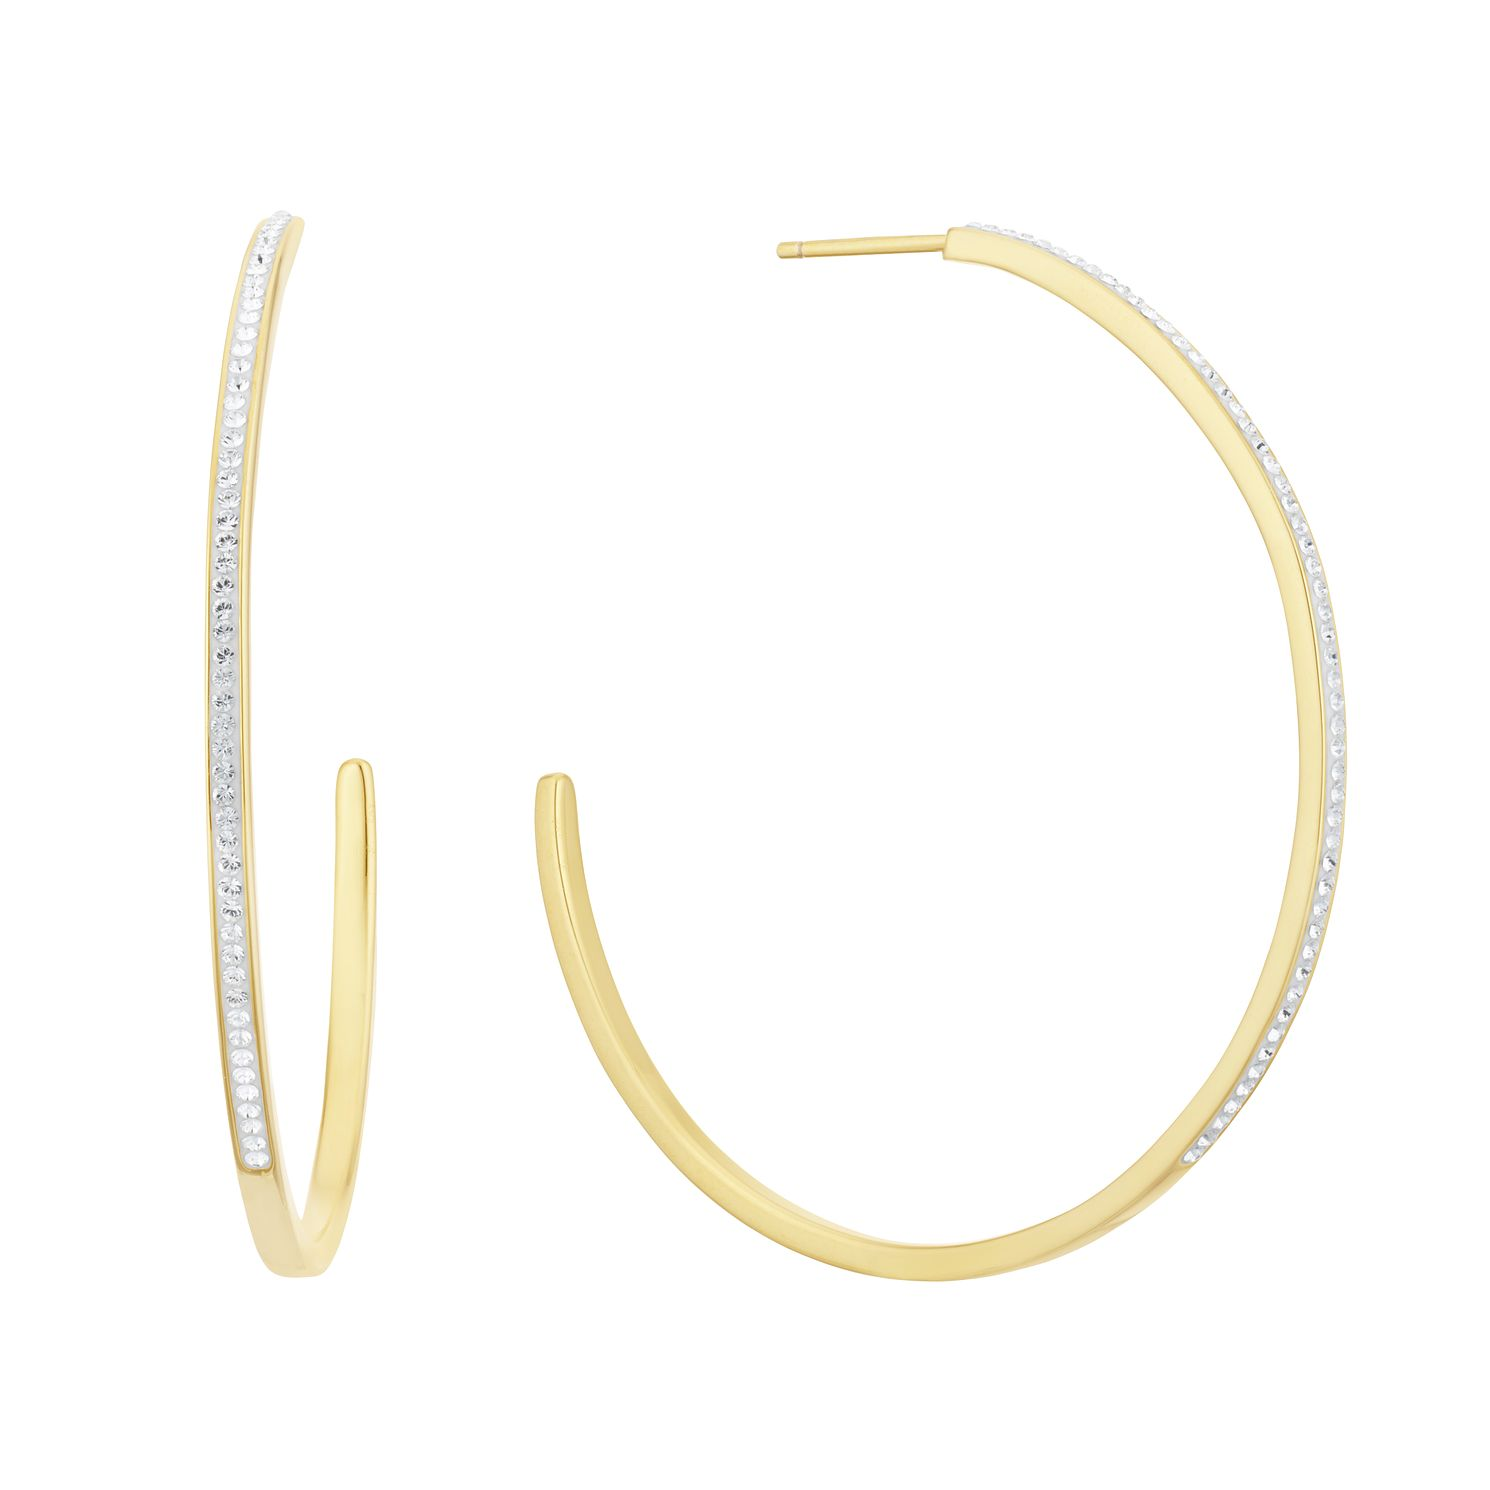 Evoke Silver Gold Plated Crystal 3/4 Hoop Earrings - Product number 3153878